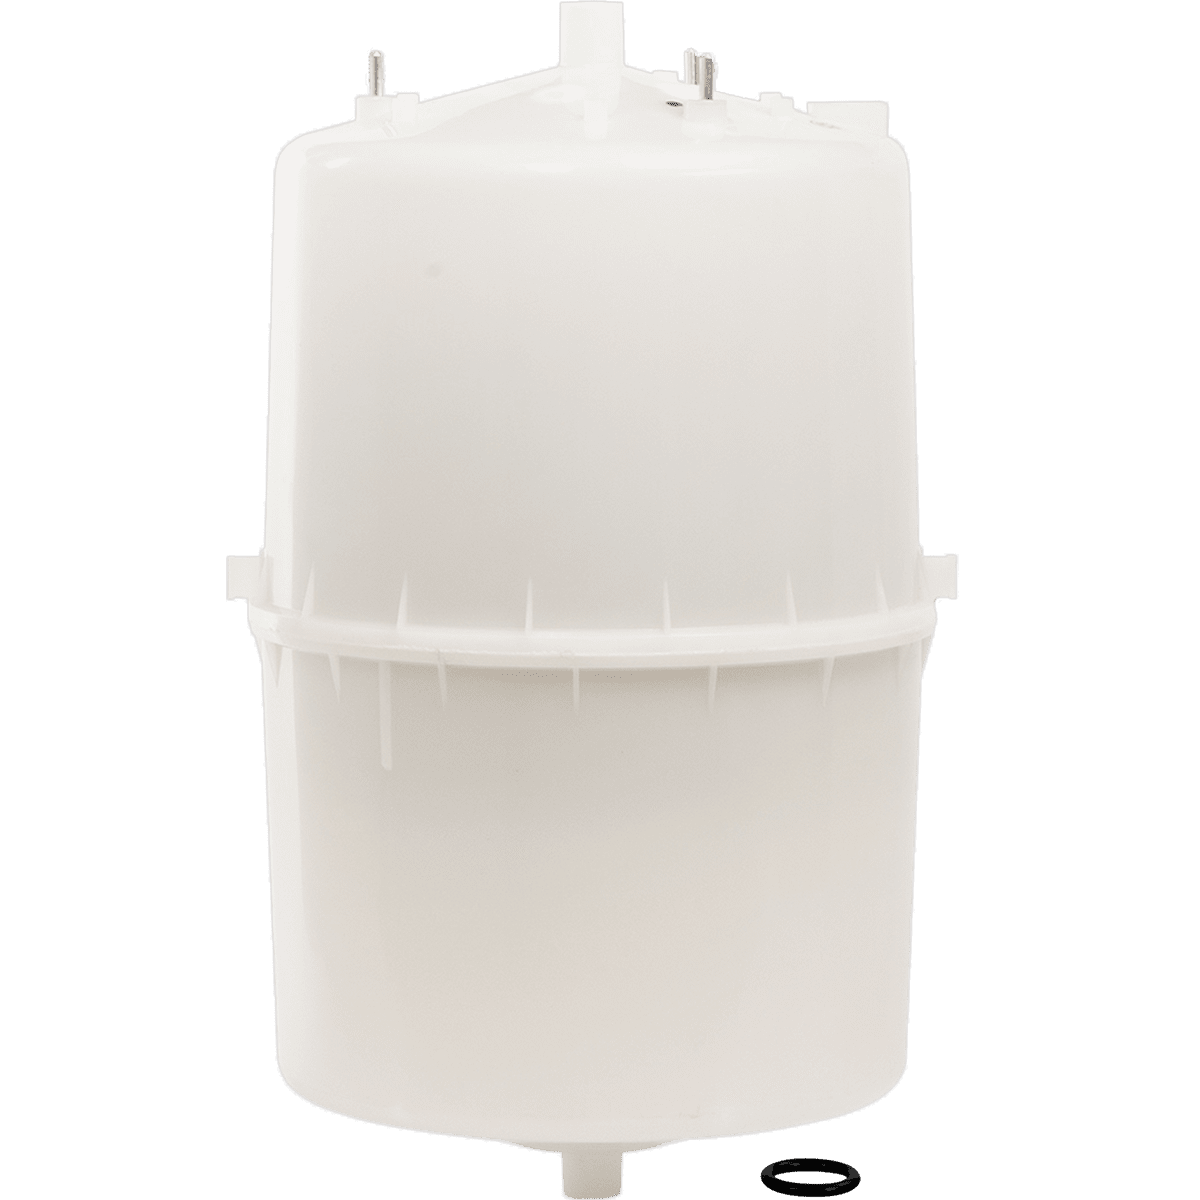 Aprilaire 421aac Steam Humidifier Cylinder (fits Nortec® 421)